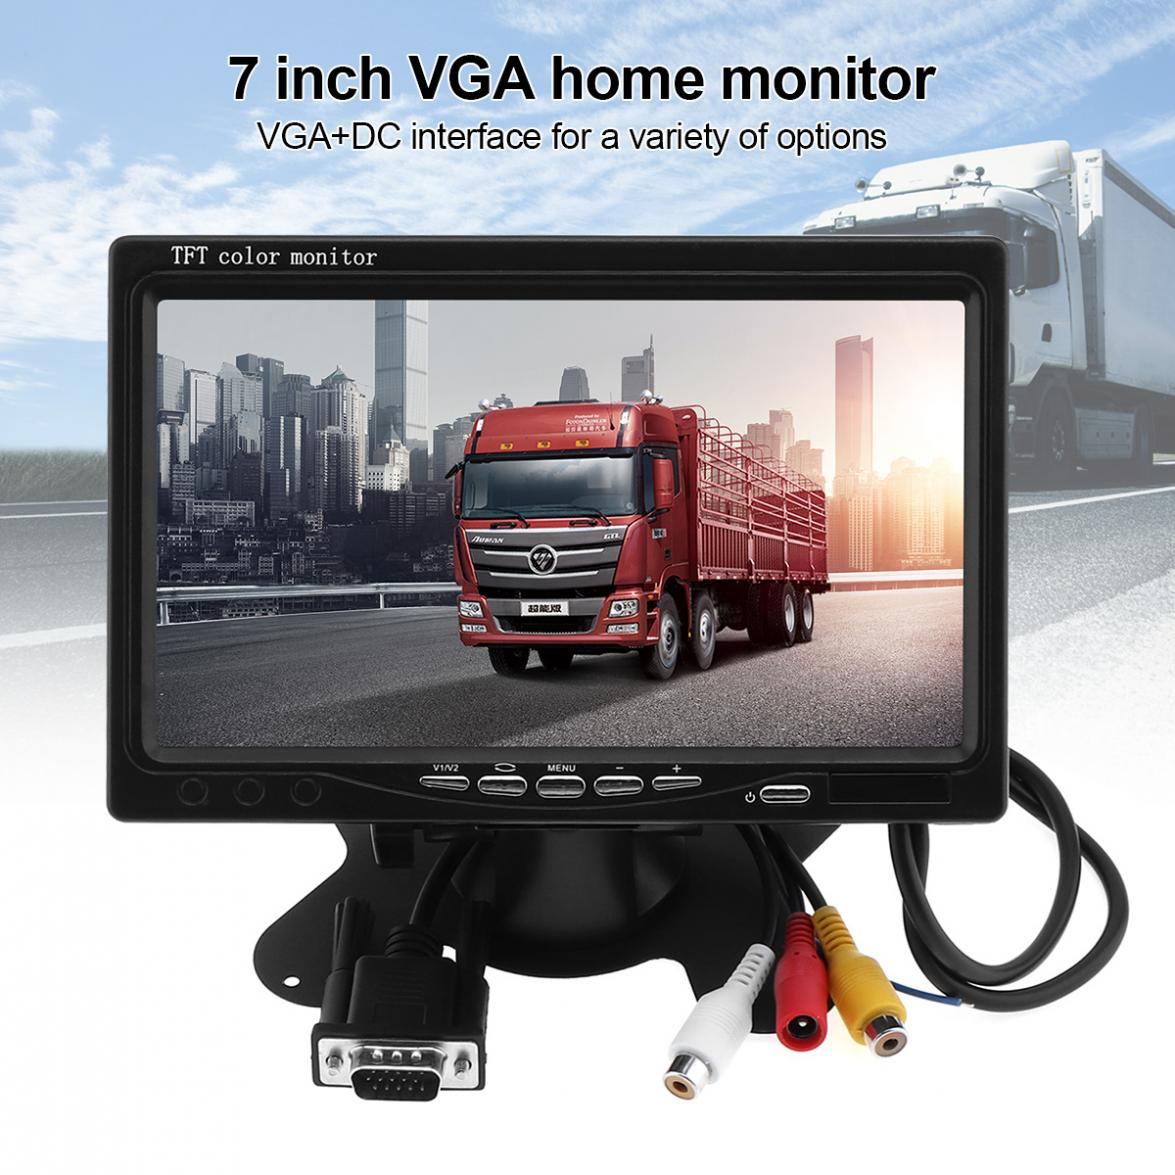 7 Inch 1024x600 12V HD TFT LCD Car VGA Home Monitor Bright Color VGA Interface AV Auto Video Player PAL / NTSC / SCAME-in Car Monitors from Automobiles & Motorcycles    2